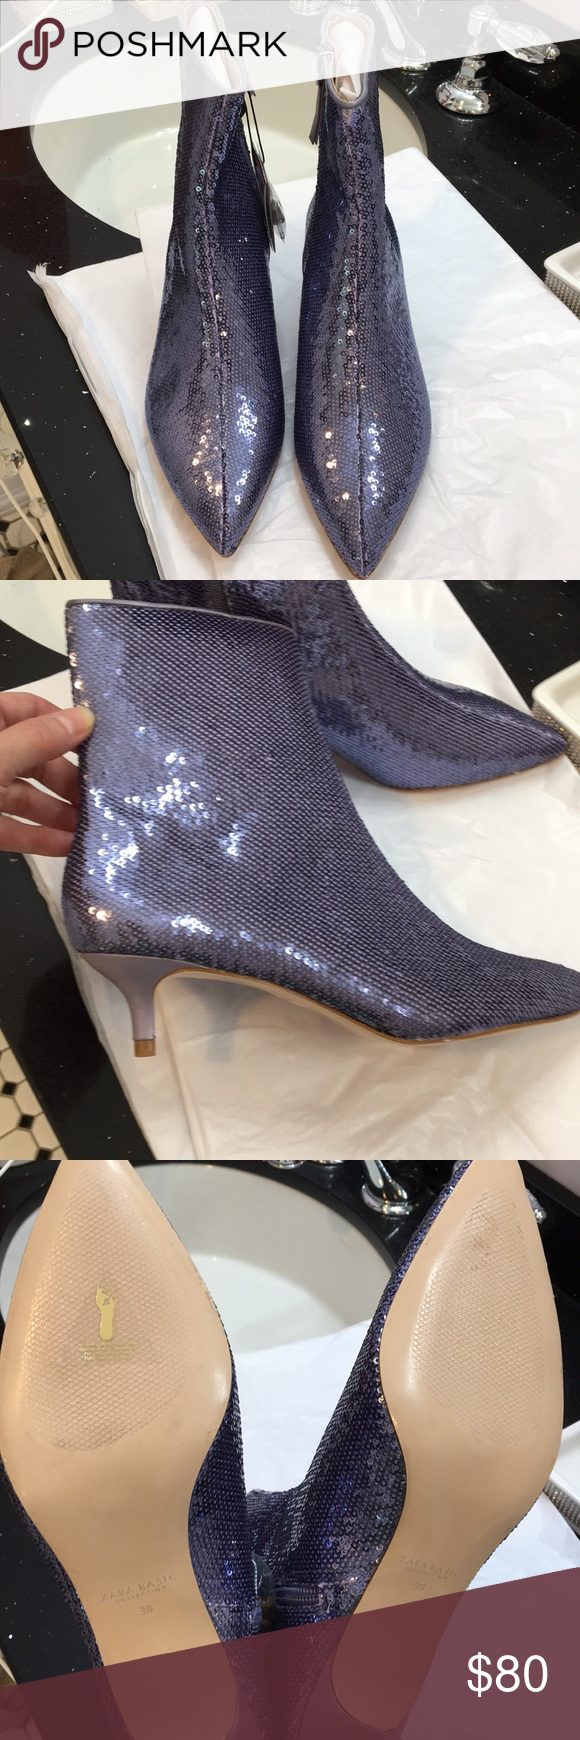 e239b87ae7b NWT Zara Sequin Booties. Small purple sequins. Pointy toe. Inside ...